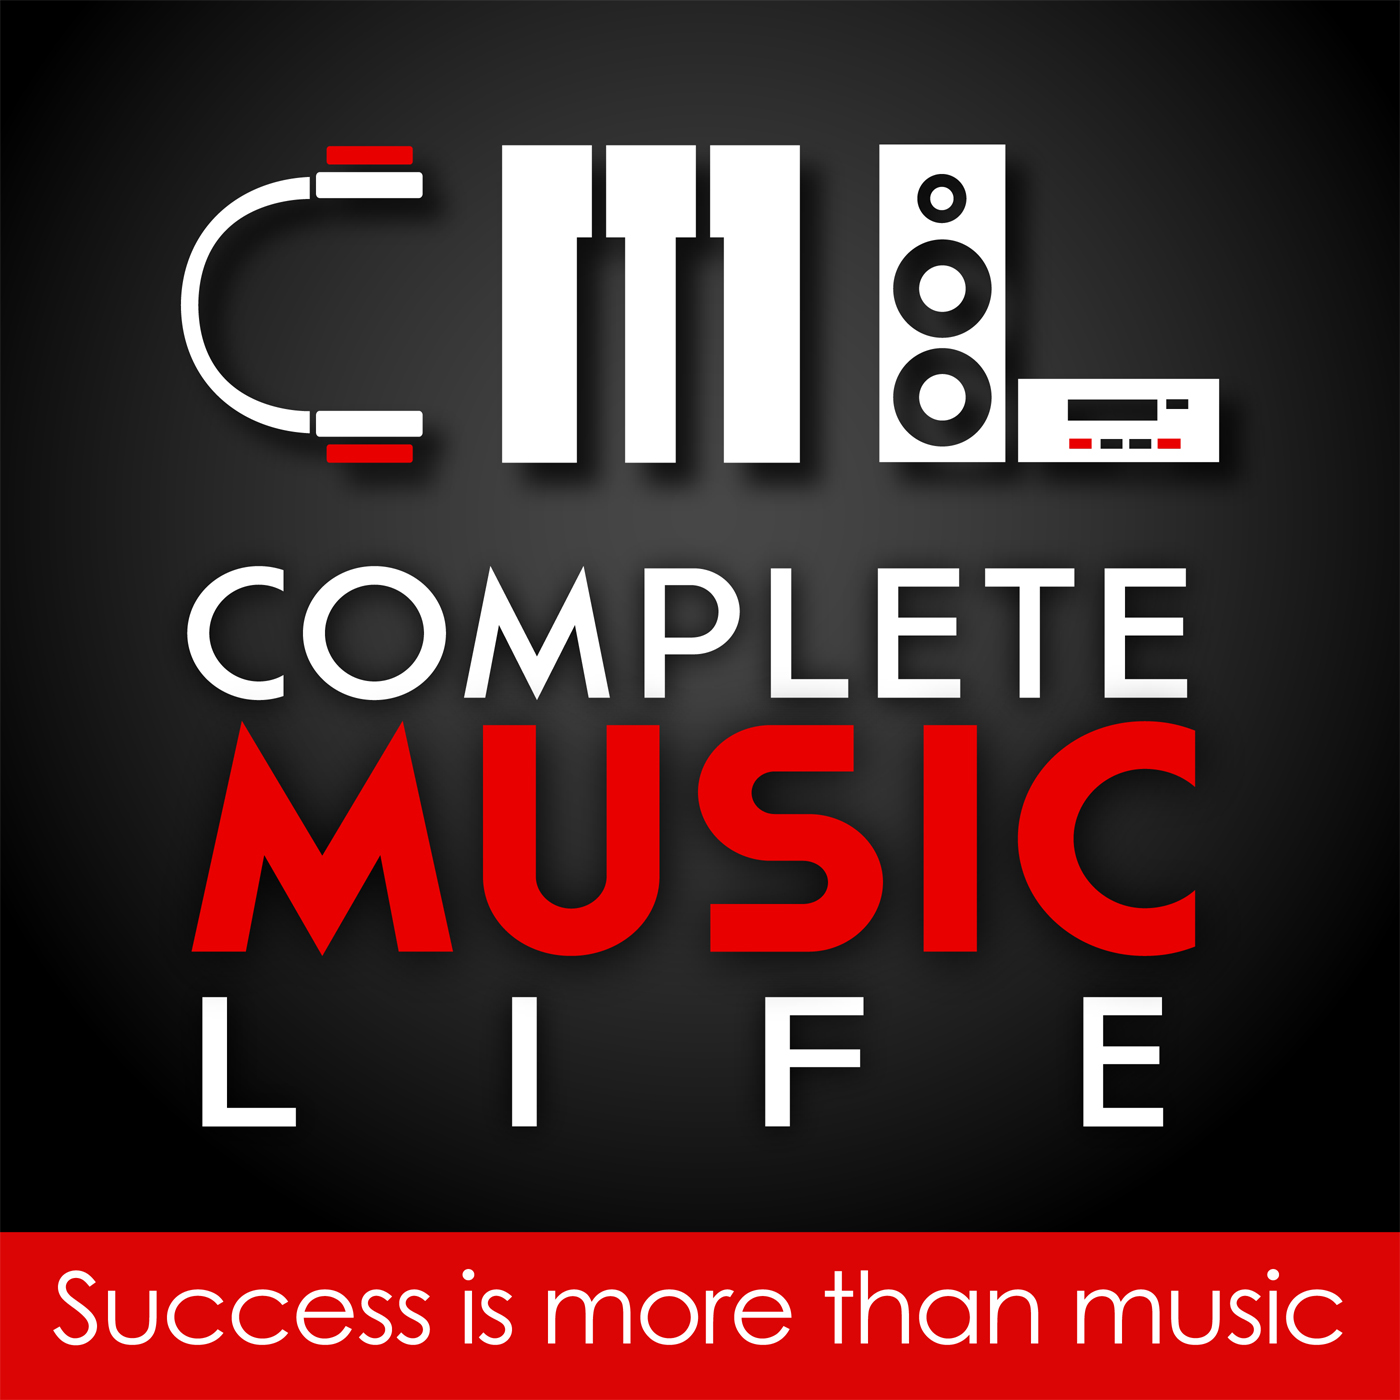 Complete Music Life Podcast: Musicianship - Business - Tech - Health - Inspiration